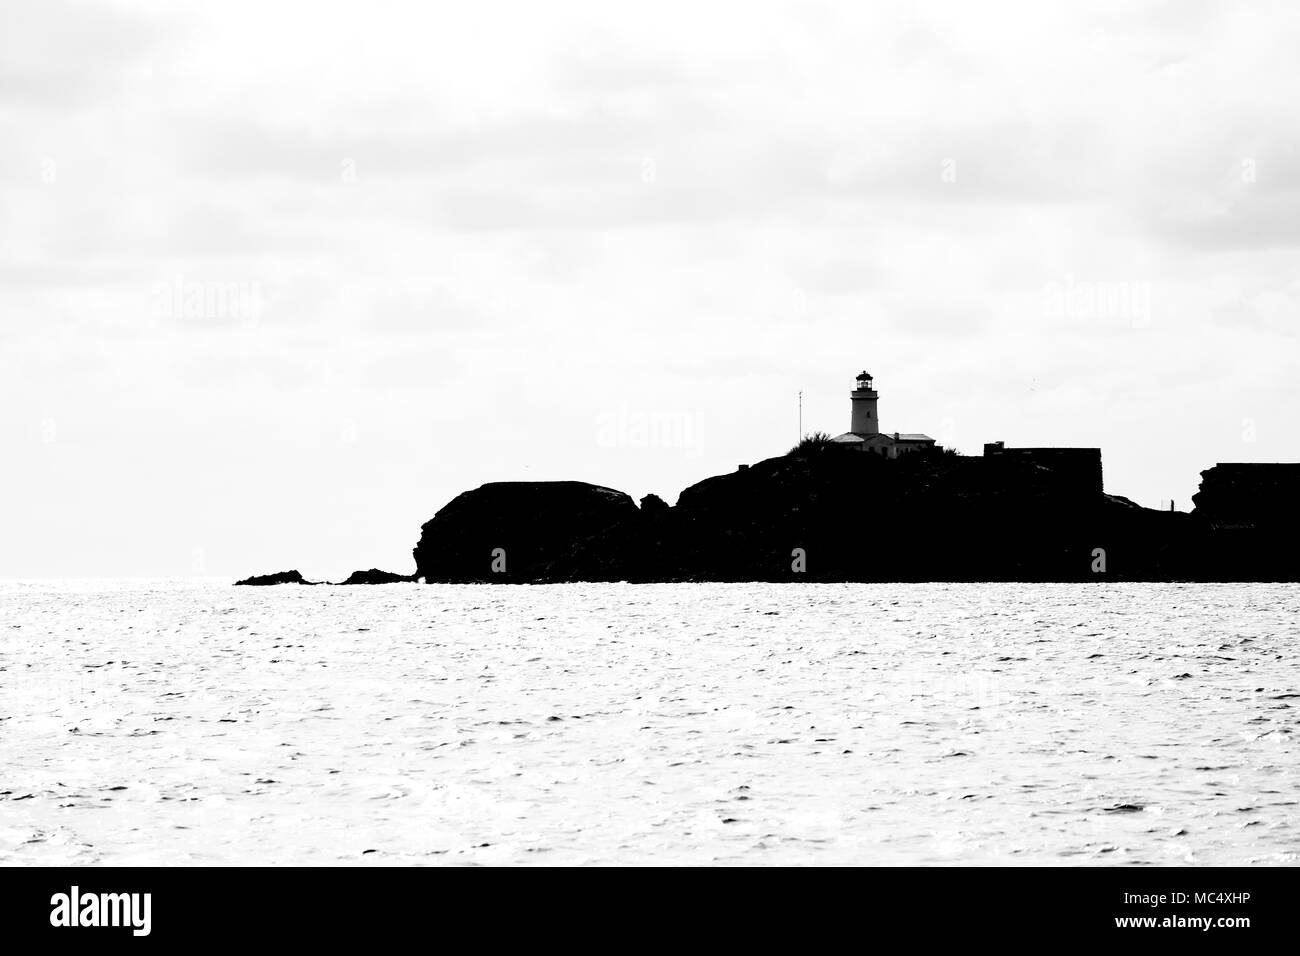 Black and white photography taken from the sea of a small island with a lighthouse at the top of the Hyères Islands archipelago Stock Photo